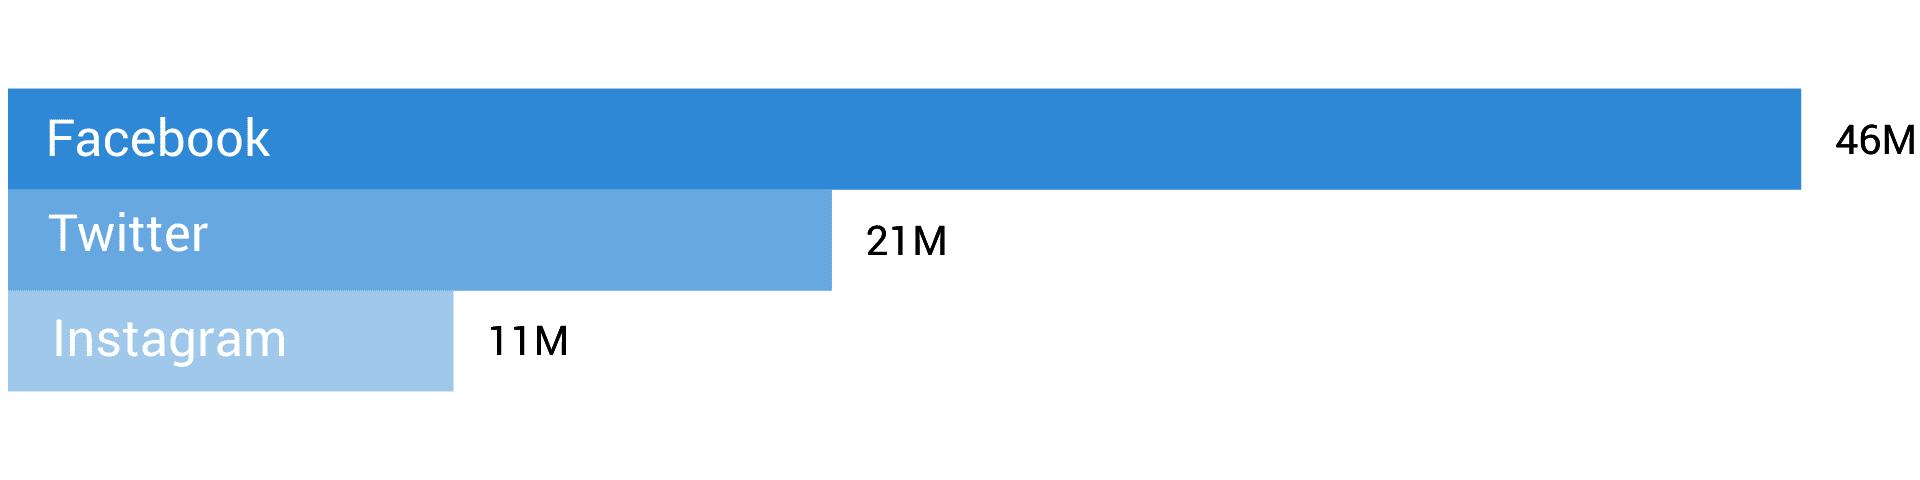 Index Total Audience Size by Channel Chart